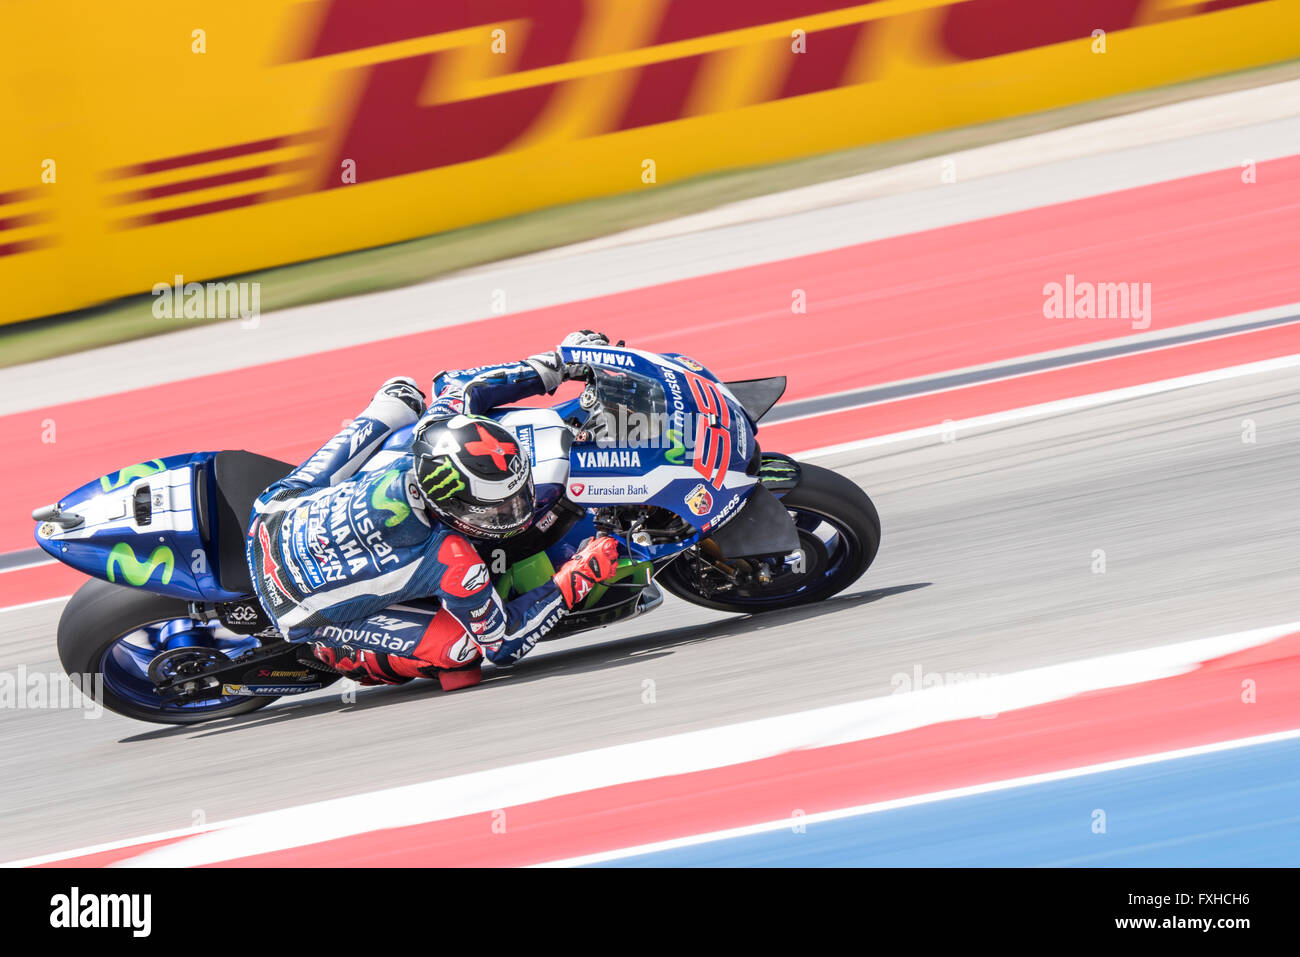 Jorge Lorenzo of Movistar Yamaha on his way to 2nd place in the 2016 Red Bull Grand Prix of the Americas. Stock Photo